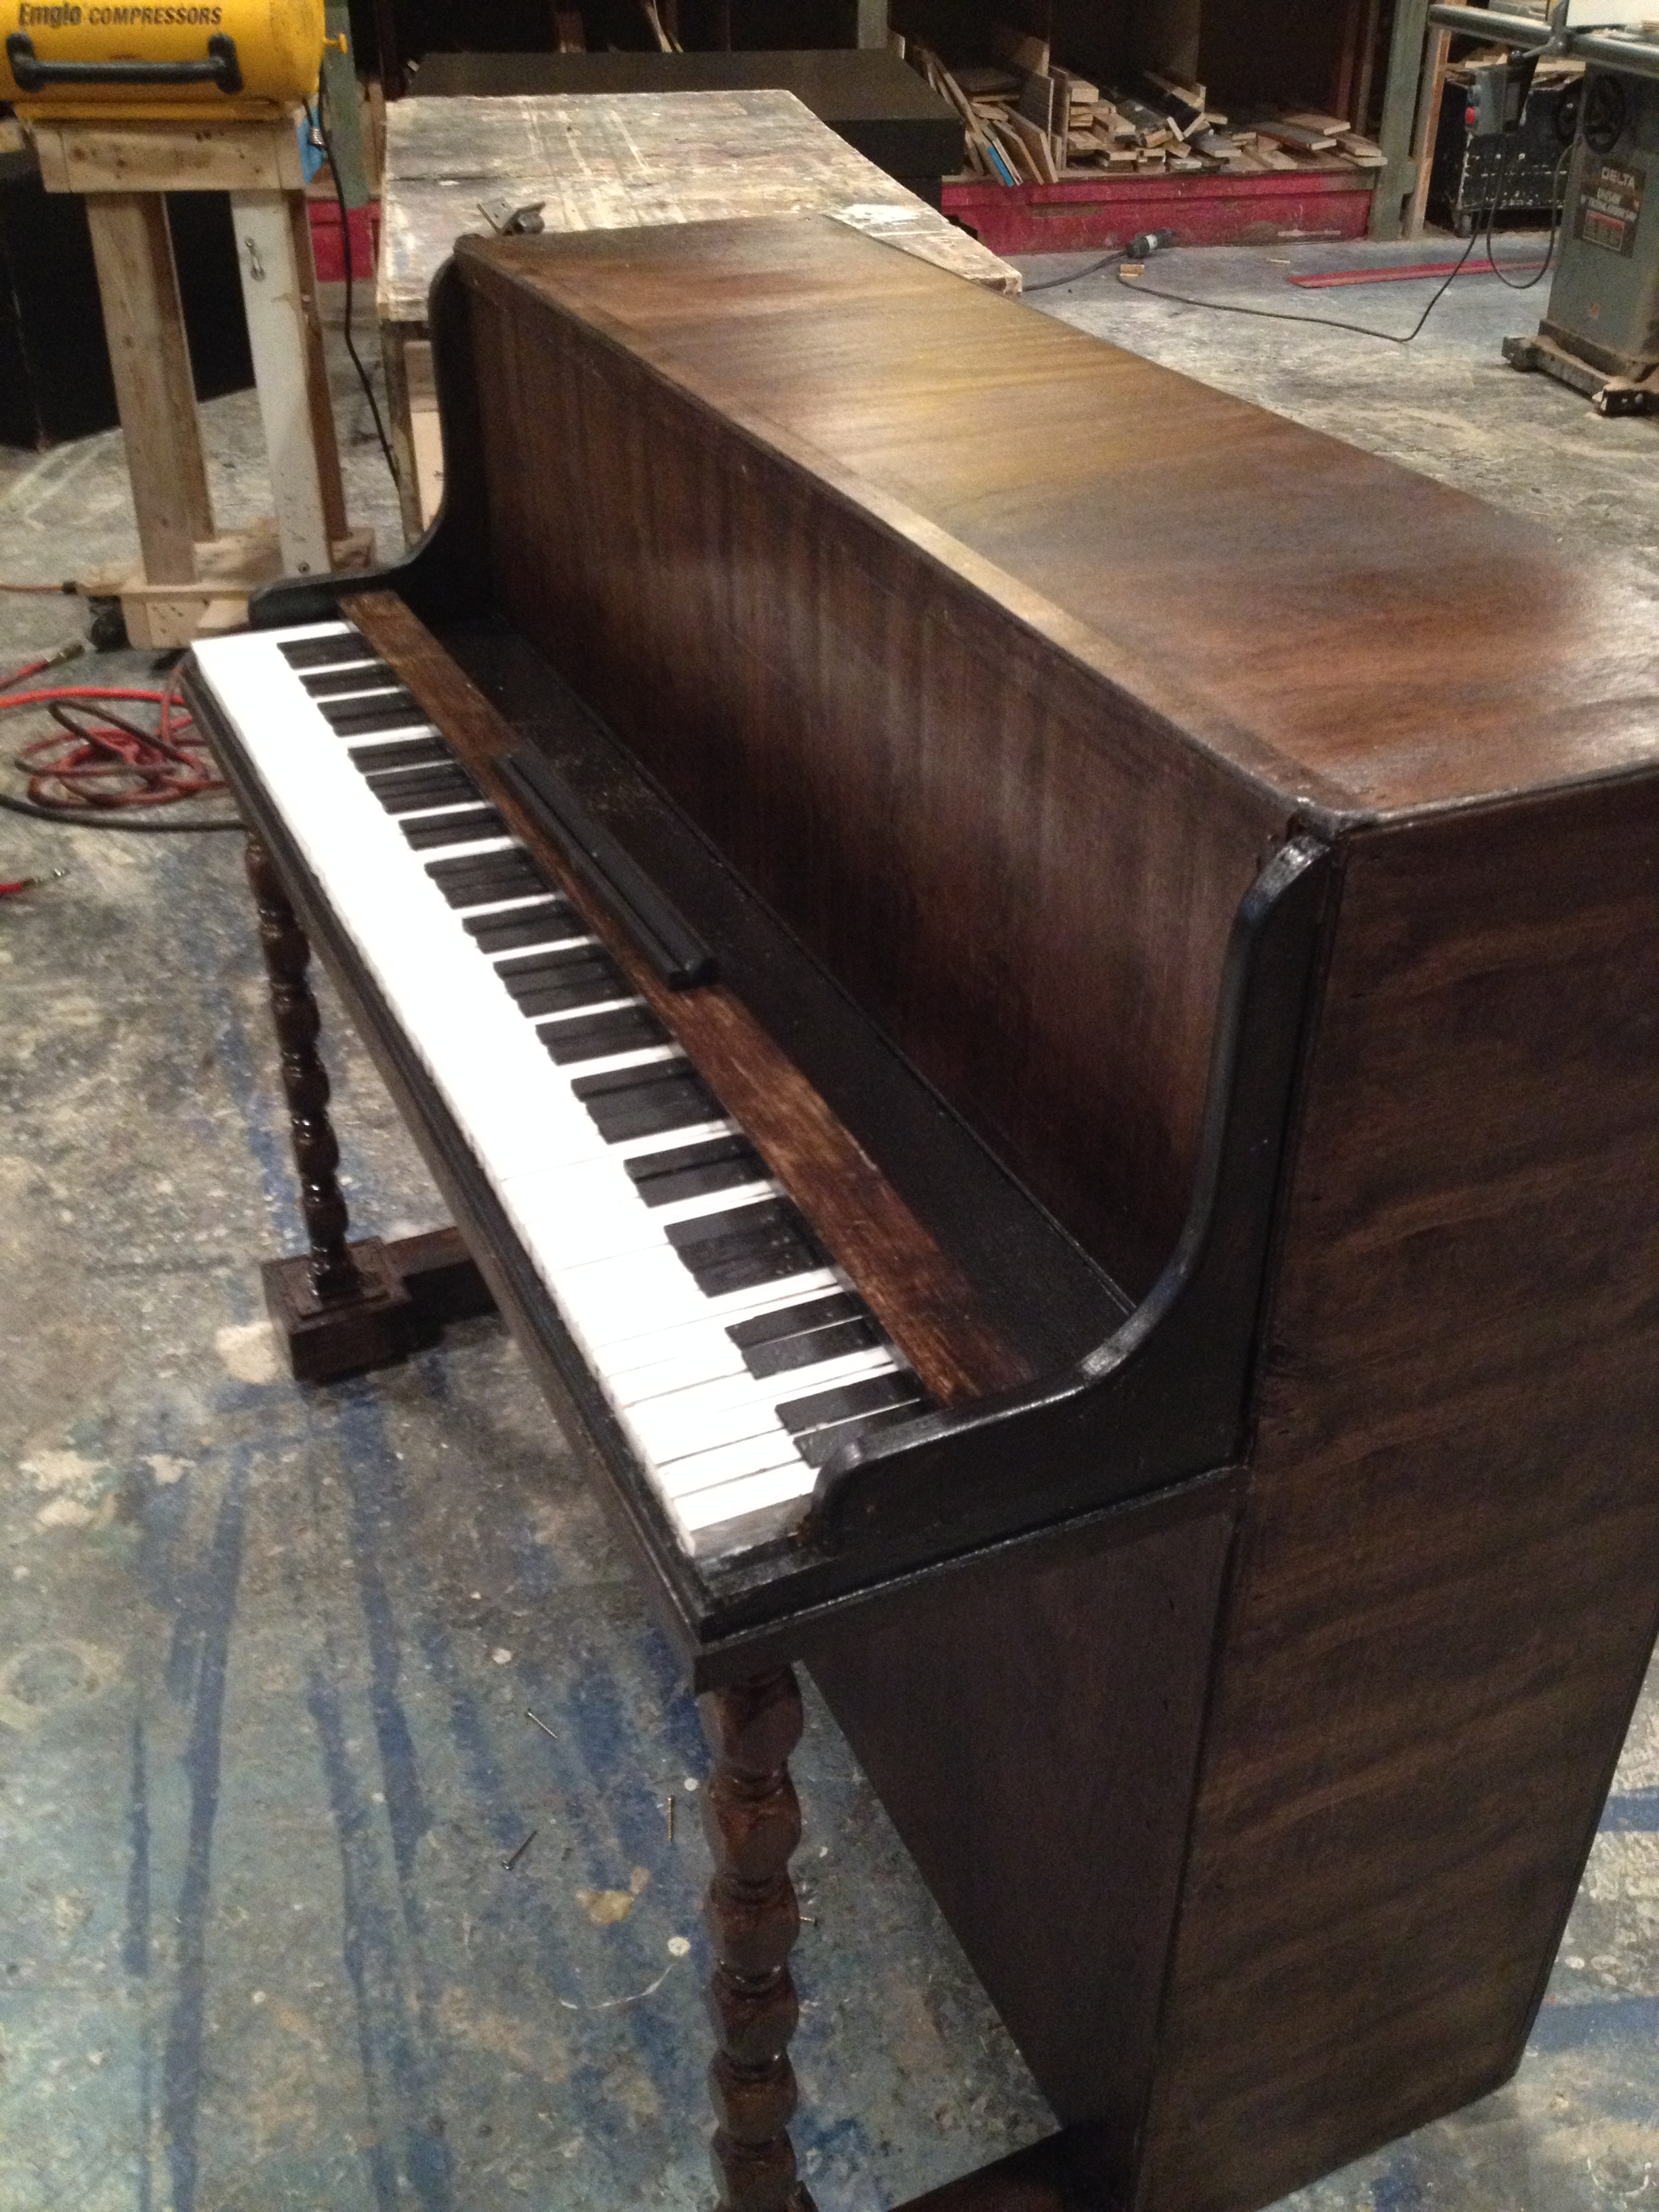 Finished Prop Piano